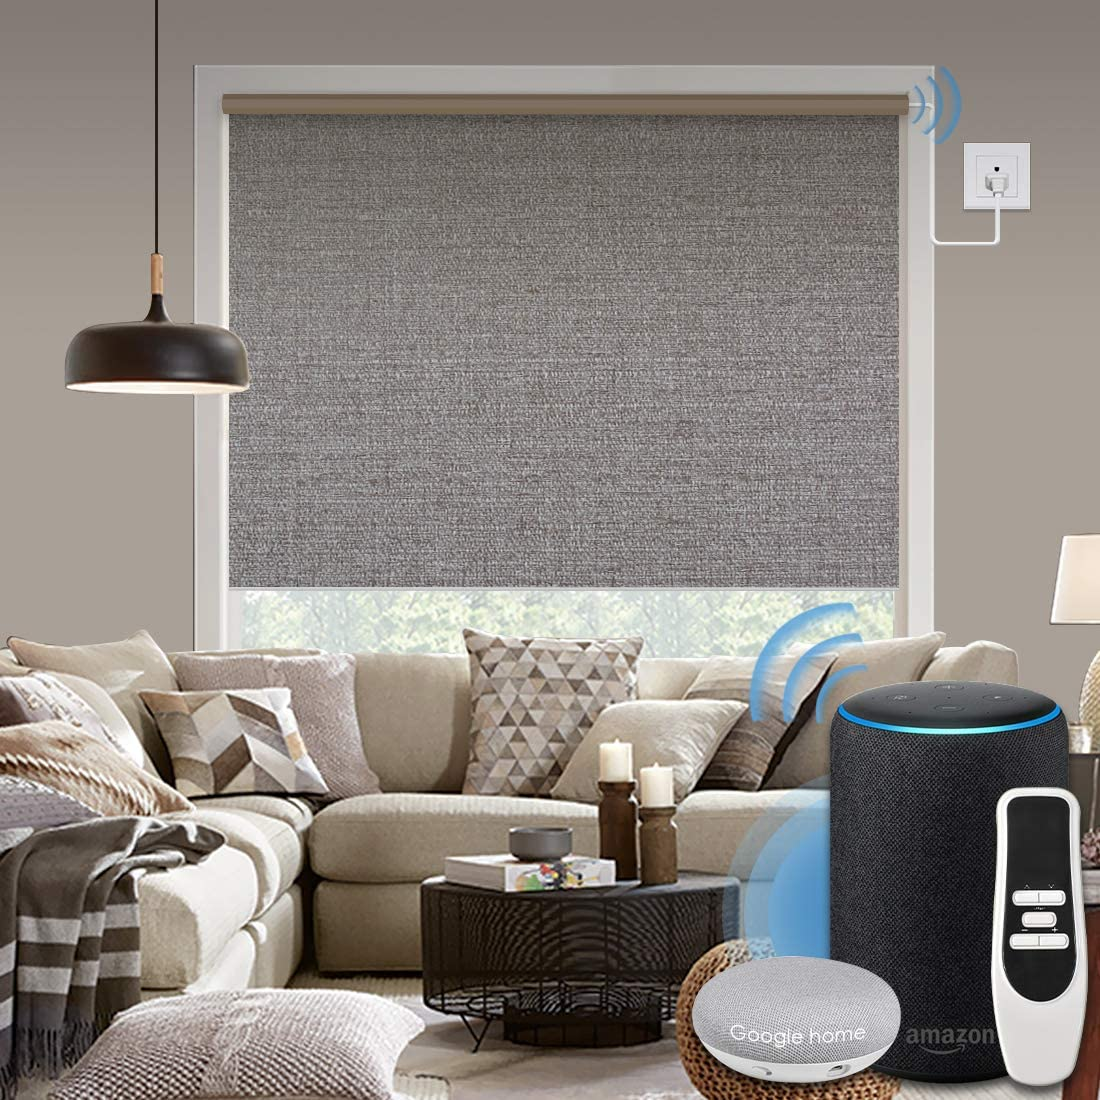 Graywind Motorized 100% Blackout Roller Shade with Alexa Google Smart Home Control Build-in Hardwired Window Shades Thermal Insulated Window Blinds, Customized Size (Grey Brown)